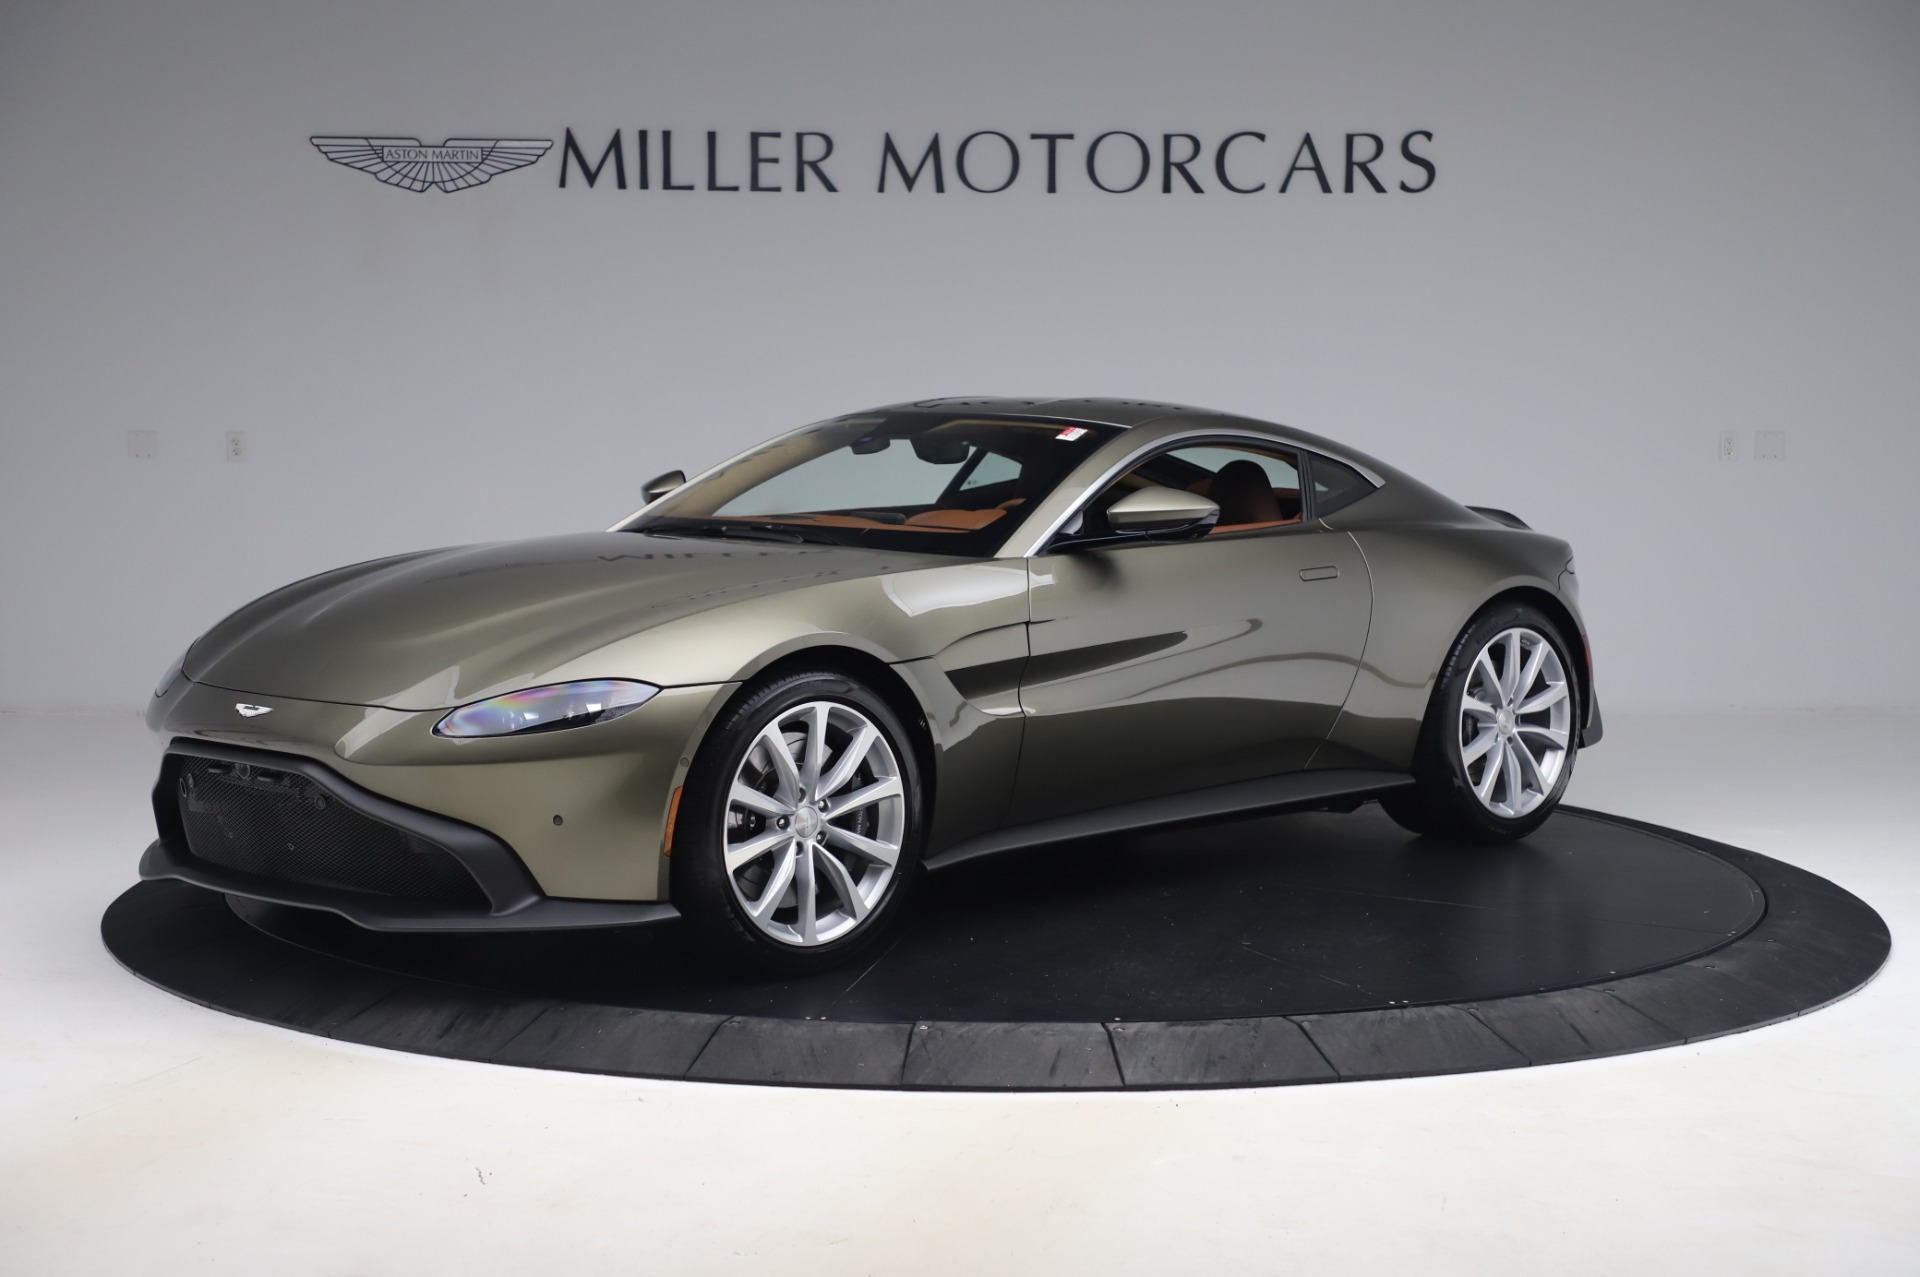 New 2020 Aston Martin Vantage Coupe for sale $180,450 at Alfa Romeo of Westport in Westport CT 06880 1